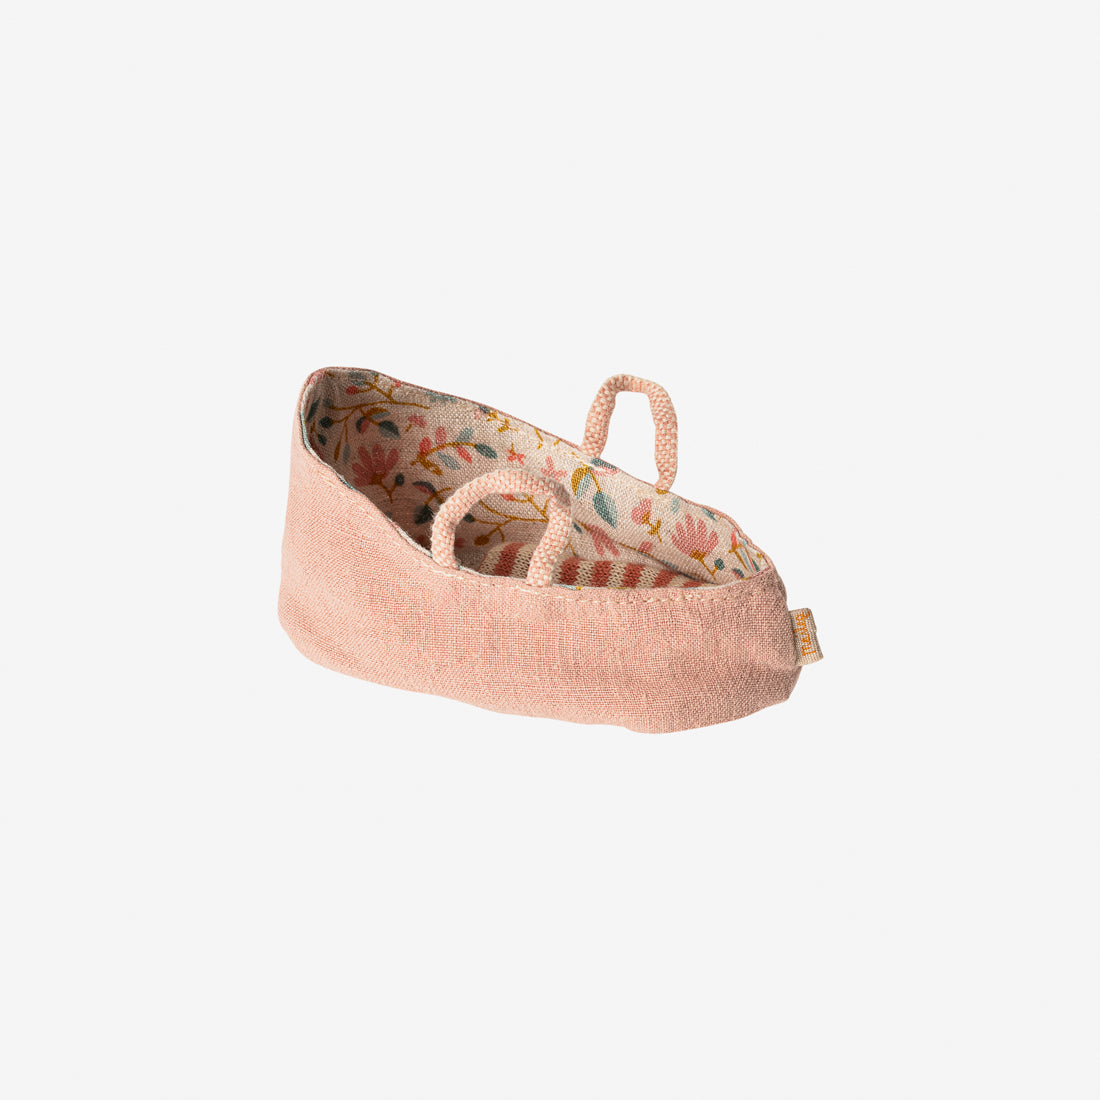 MY Mini Carry Cot - Misty Rose